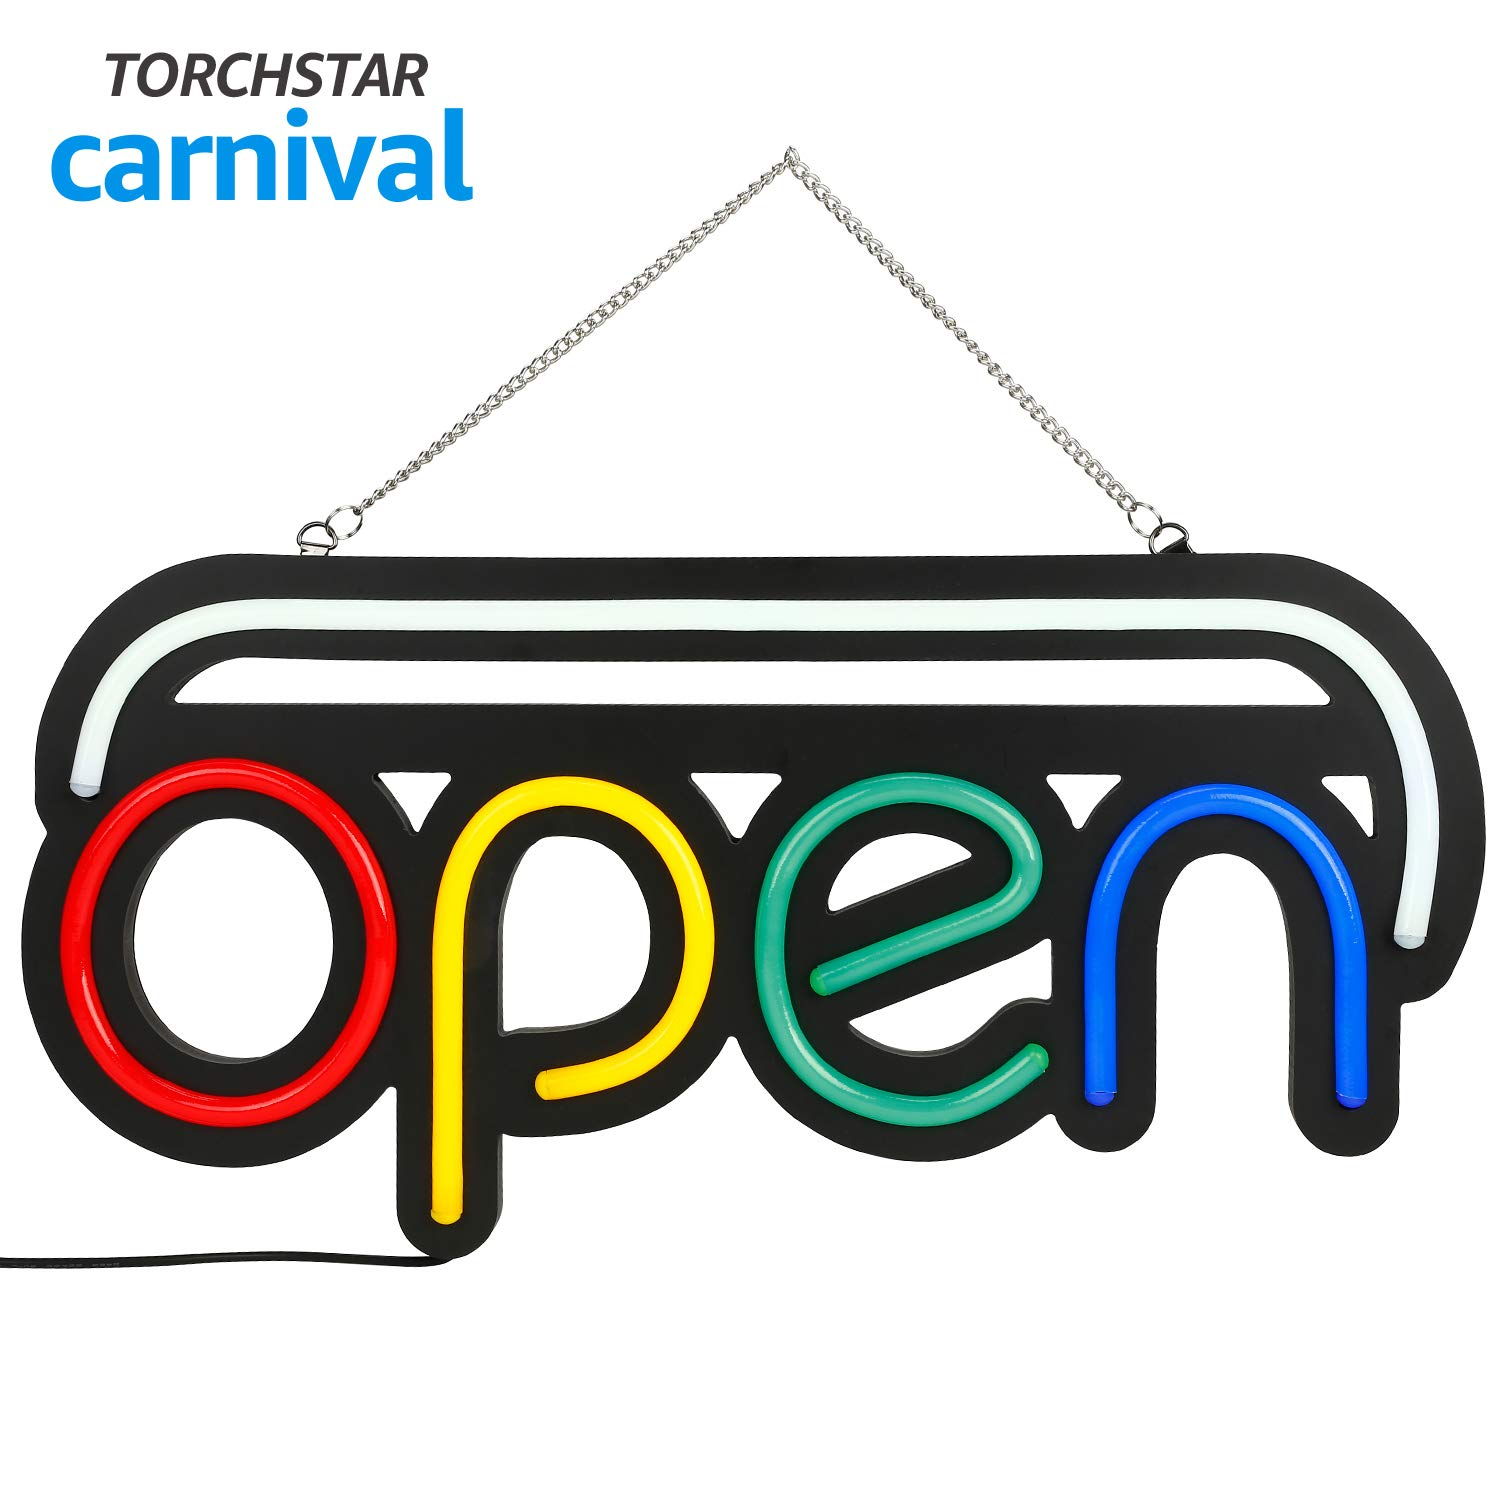 """Open LED Neon Light Sign, 19.7"""" x 9.8"""", Ultra Bright Neon Multicolor Style, RGB Letter Window Displaying Light, Bar, Restaurant, Store, Salon, Gas Station, Motel, Door"""